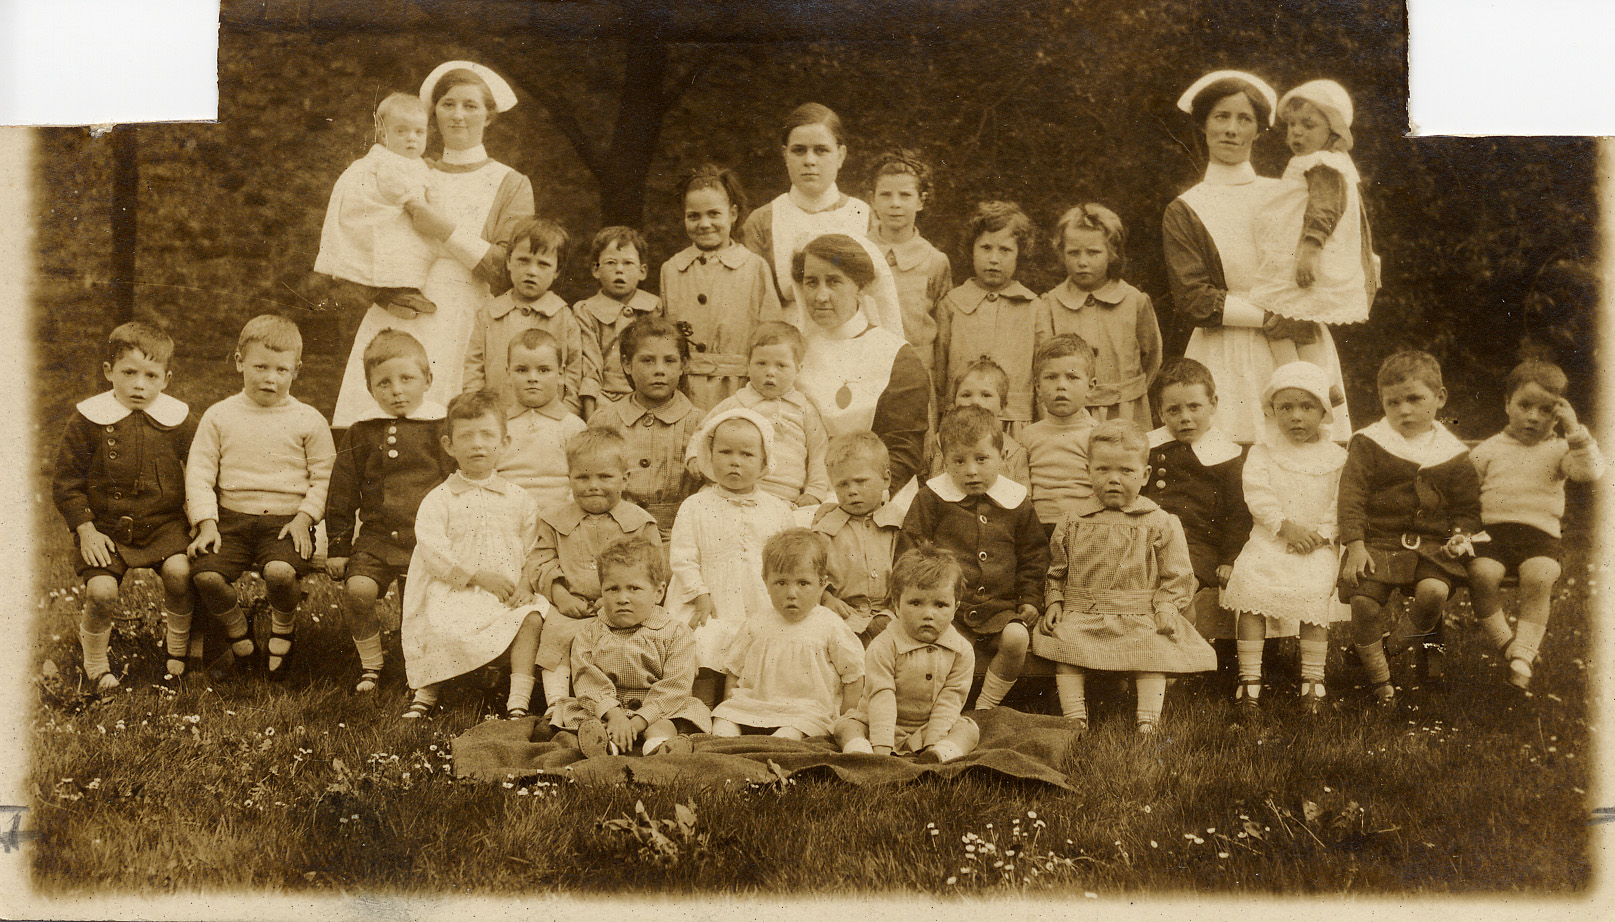 Find Out More About Our Project At The Child Care History